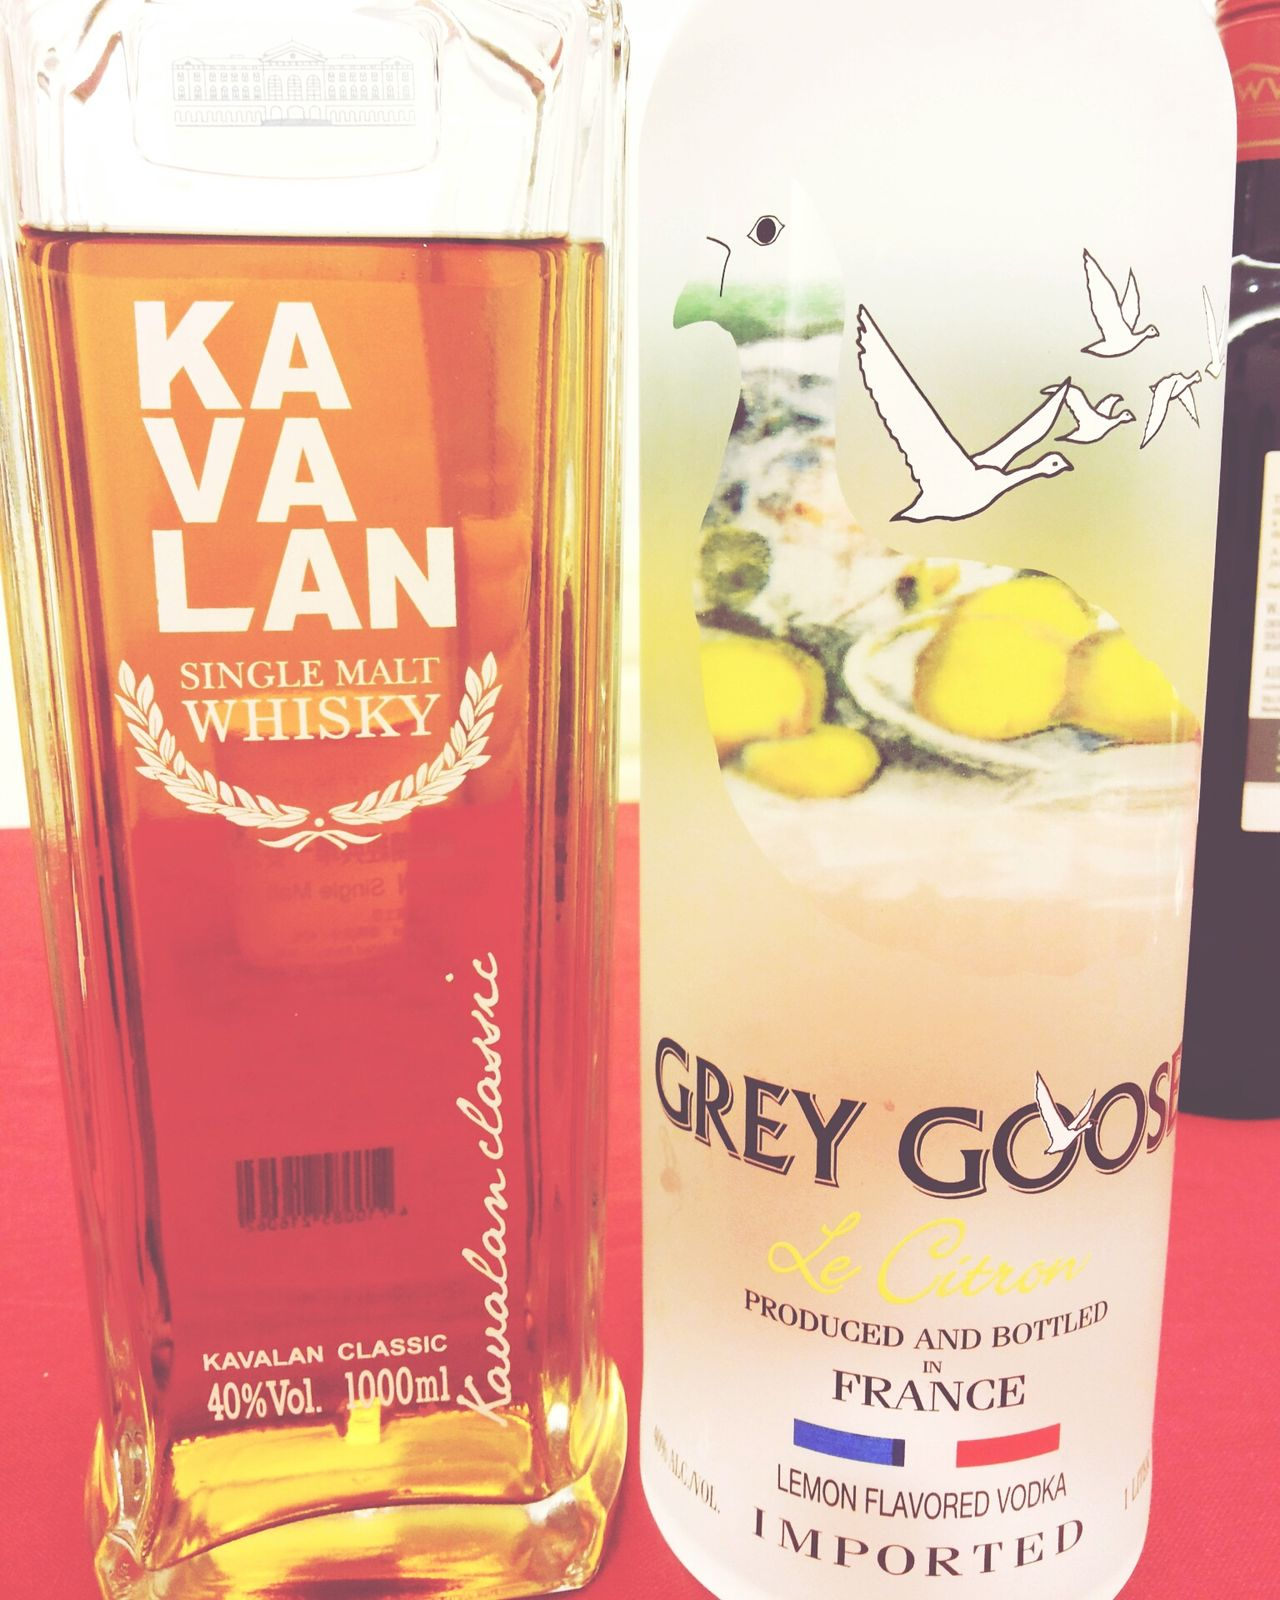 Kavalan Kavalanwhisky Whisky Greygoosevodka Grey Goose Vodka Party Throwback ASIA Christmas Drink Drank Not Drunk MerryChritsmas Good Time Great